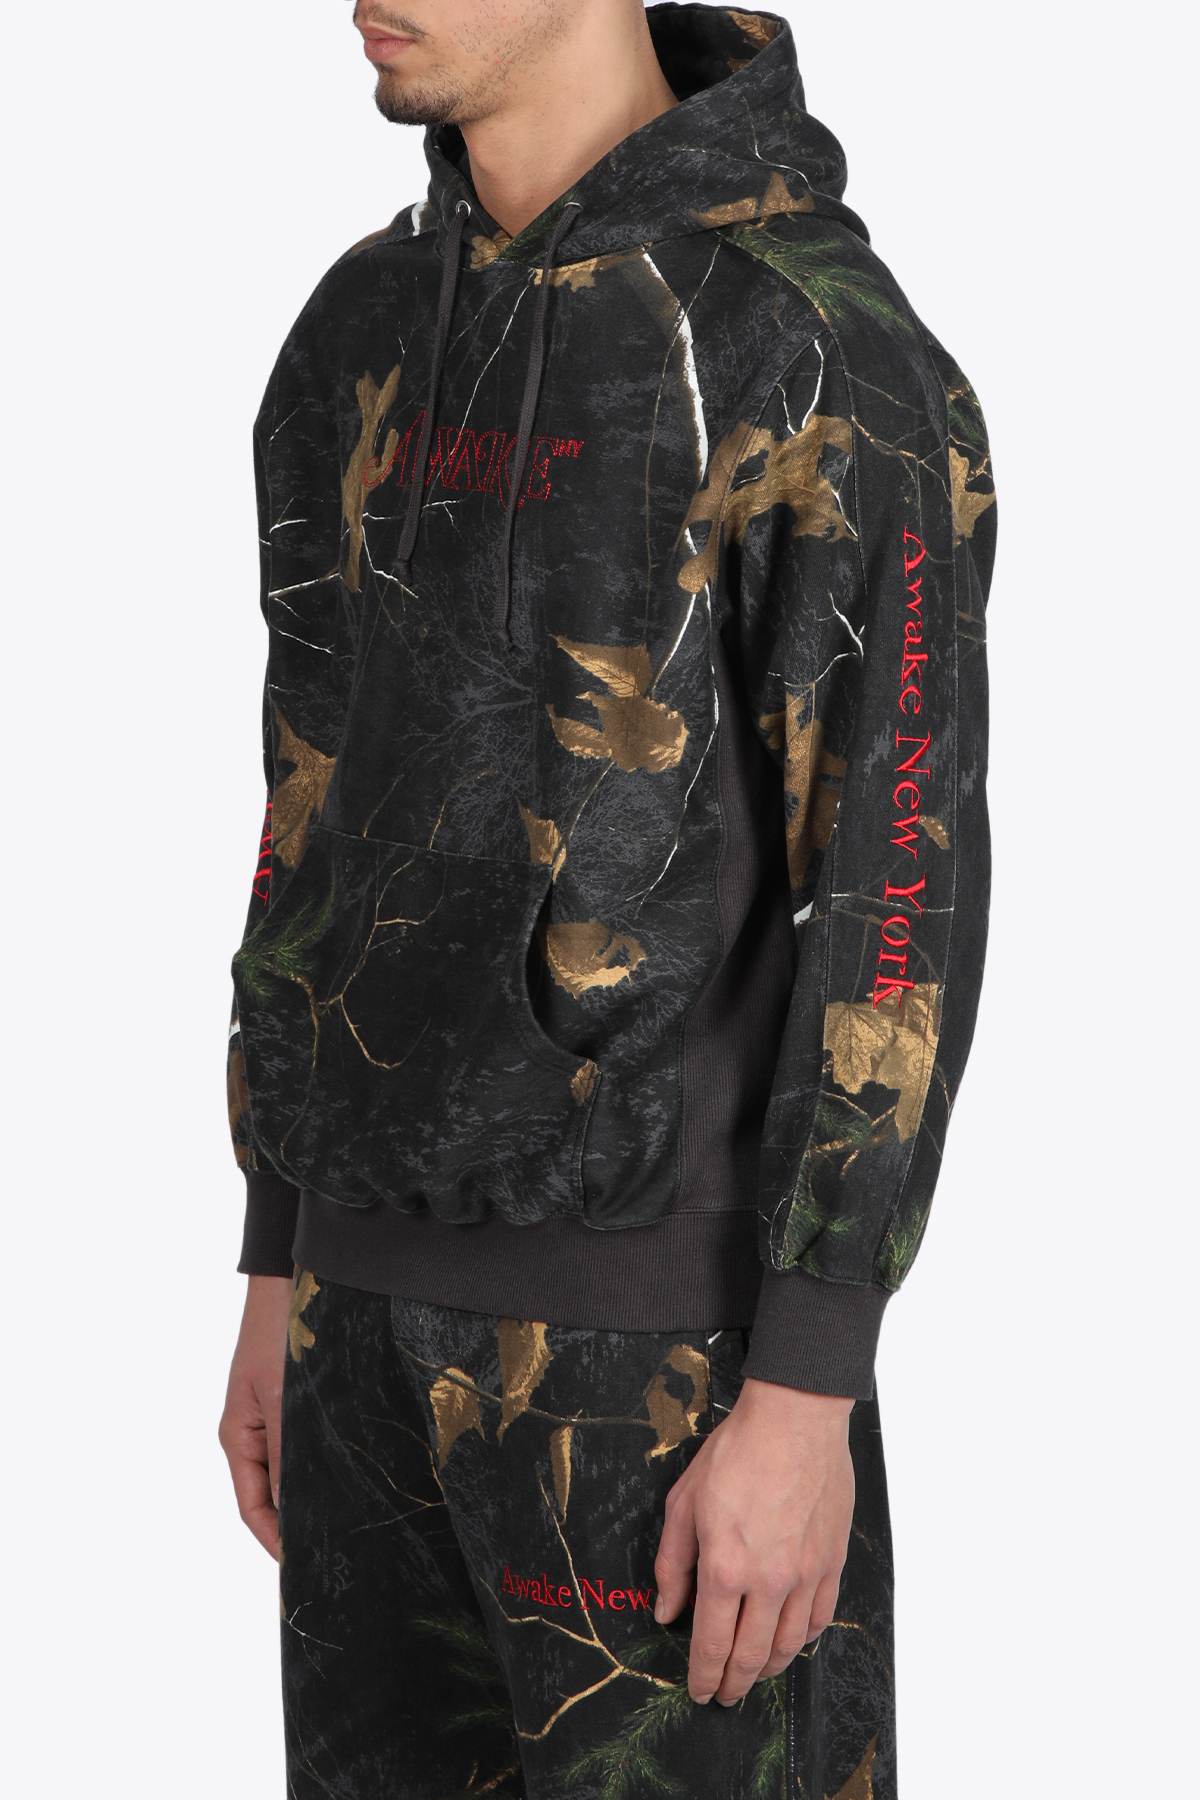 CLASSIC OUTLINE LOGO PANELED EMBROIDERED HOODIE AWAKE NY   -108764232   HD001 CLASSIC OUTLINE LOGO PANELED EMBROREAL THREE